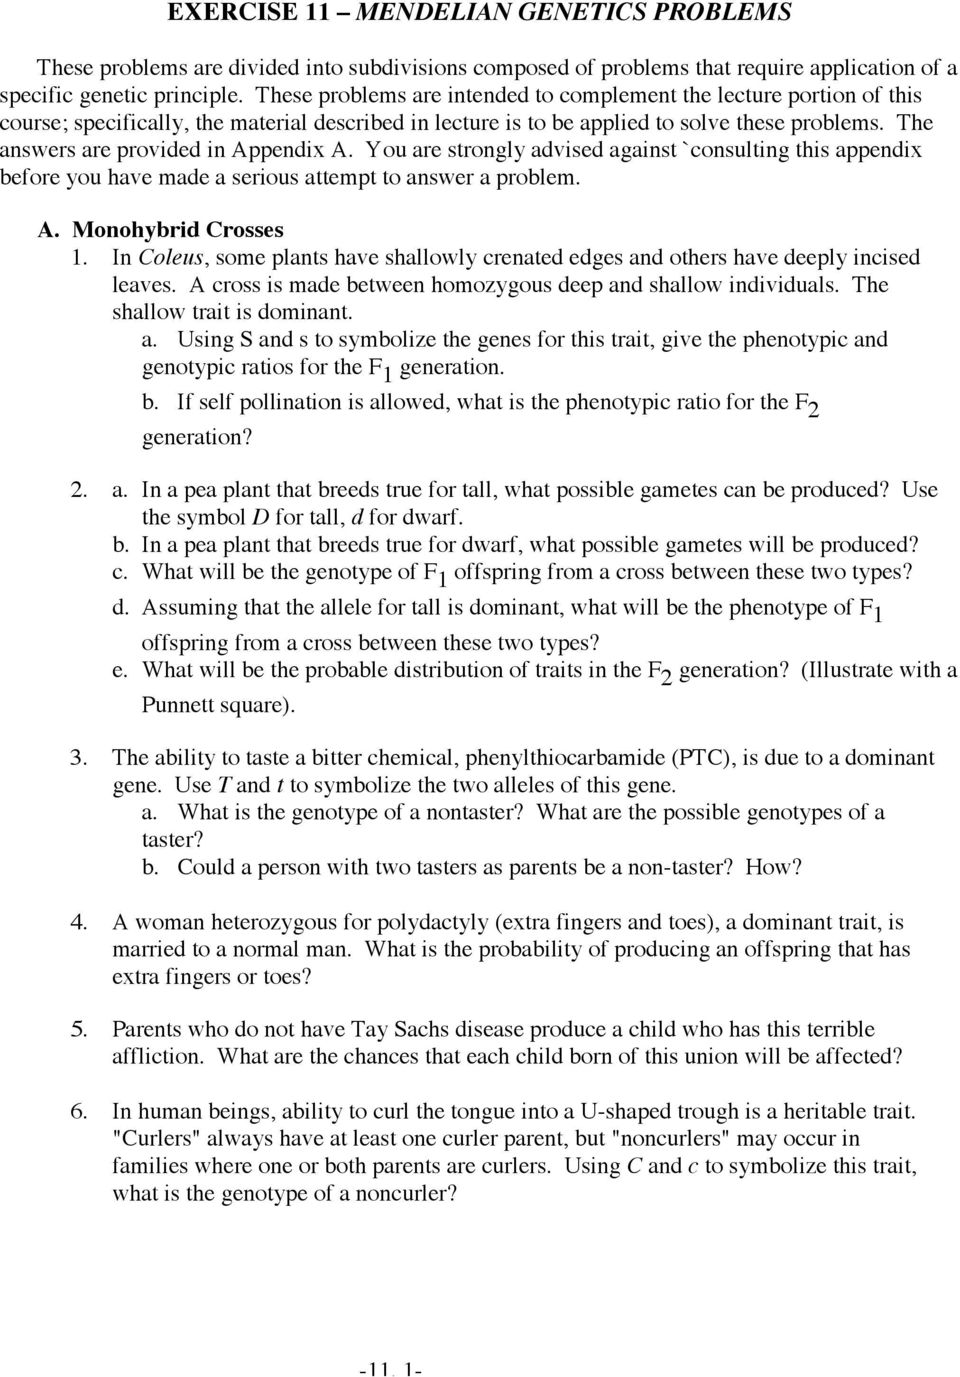 Free Worksheet Genetic Problems Worksheet And Answer genetic problems worksheet answers rringband and answer rringband